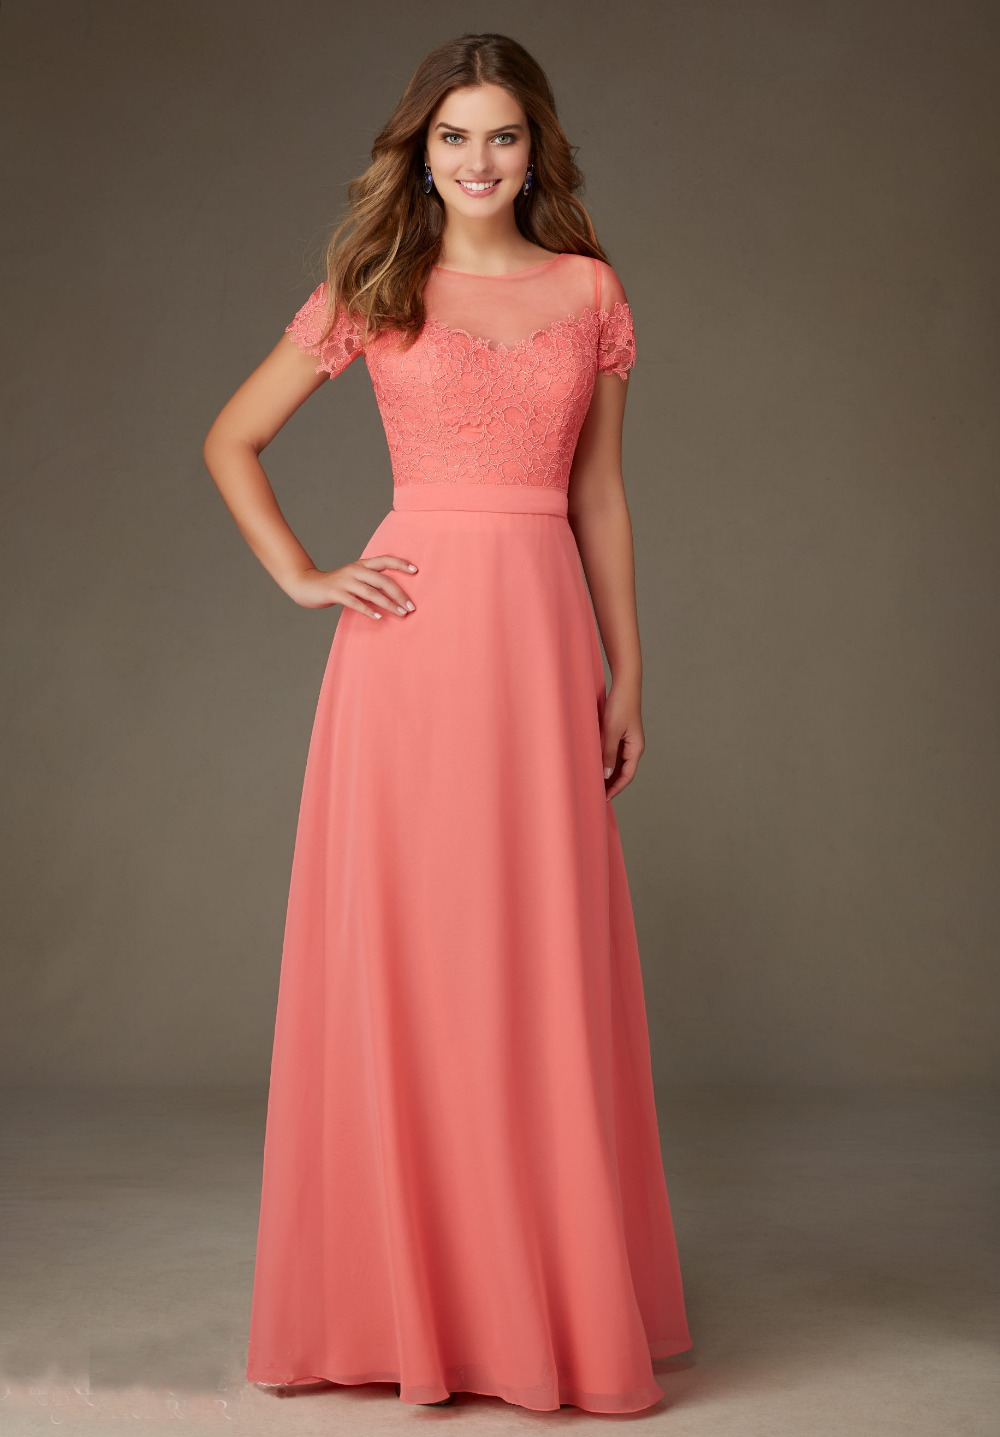 Coral Bridesmaid Dress Adorable Floor-Length Top Lace Sheer Back Chiffon Vestido Madrinha Peach Wedding Dress For Maid Of Honor